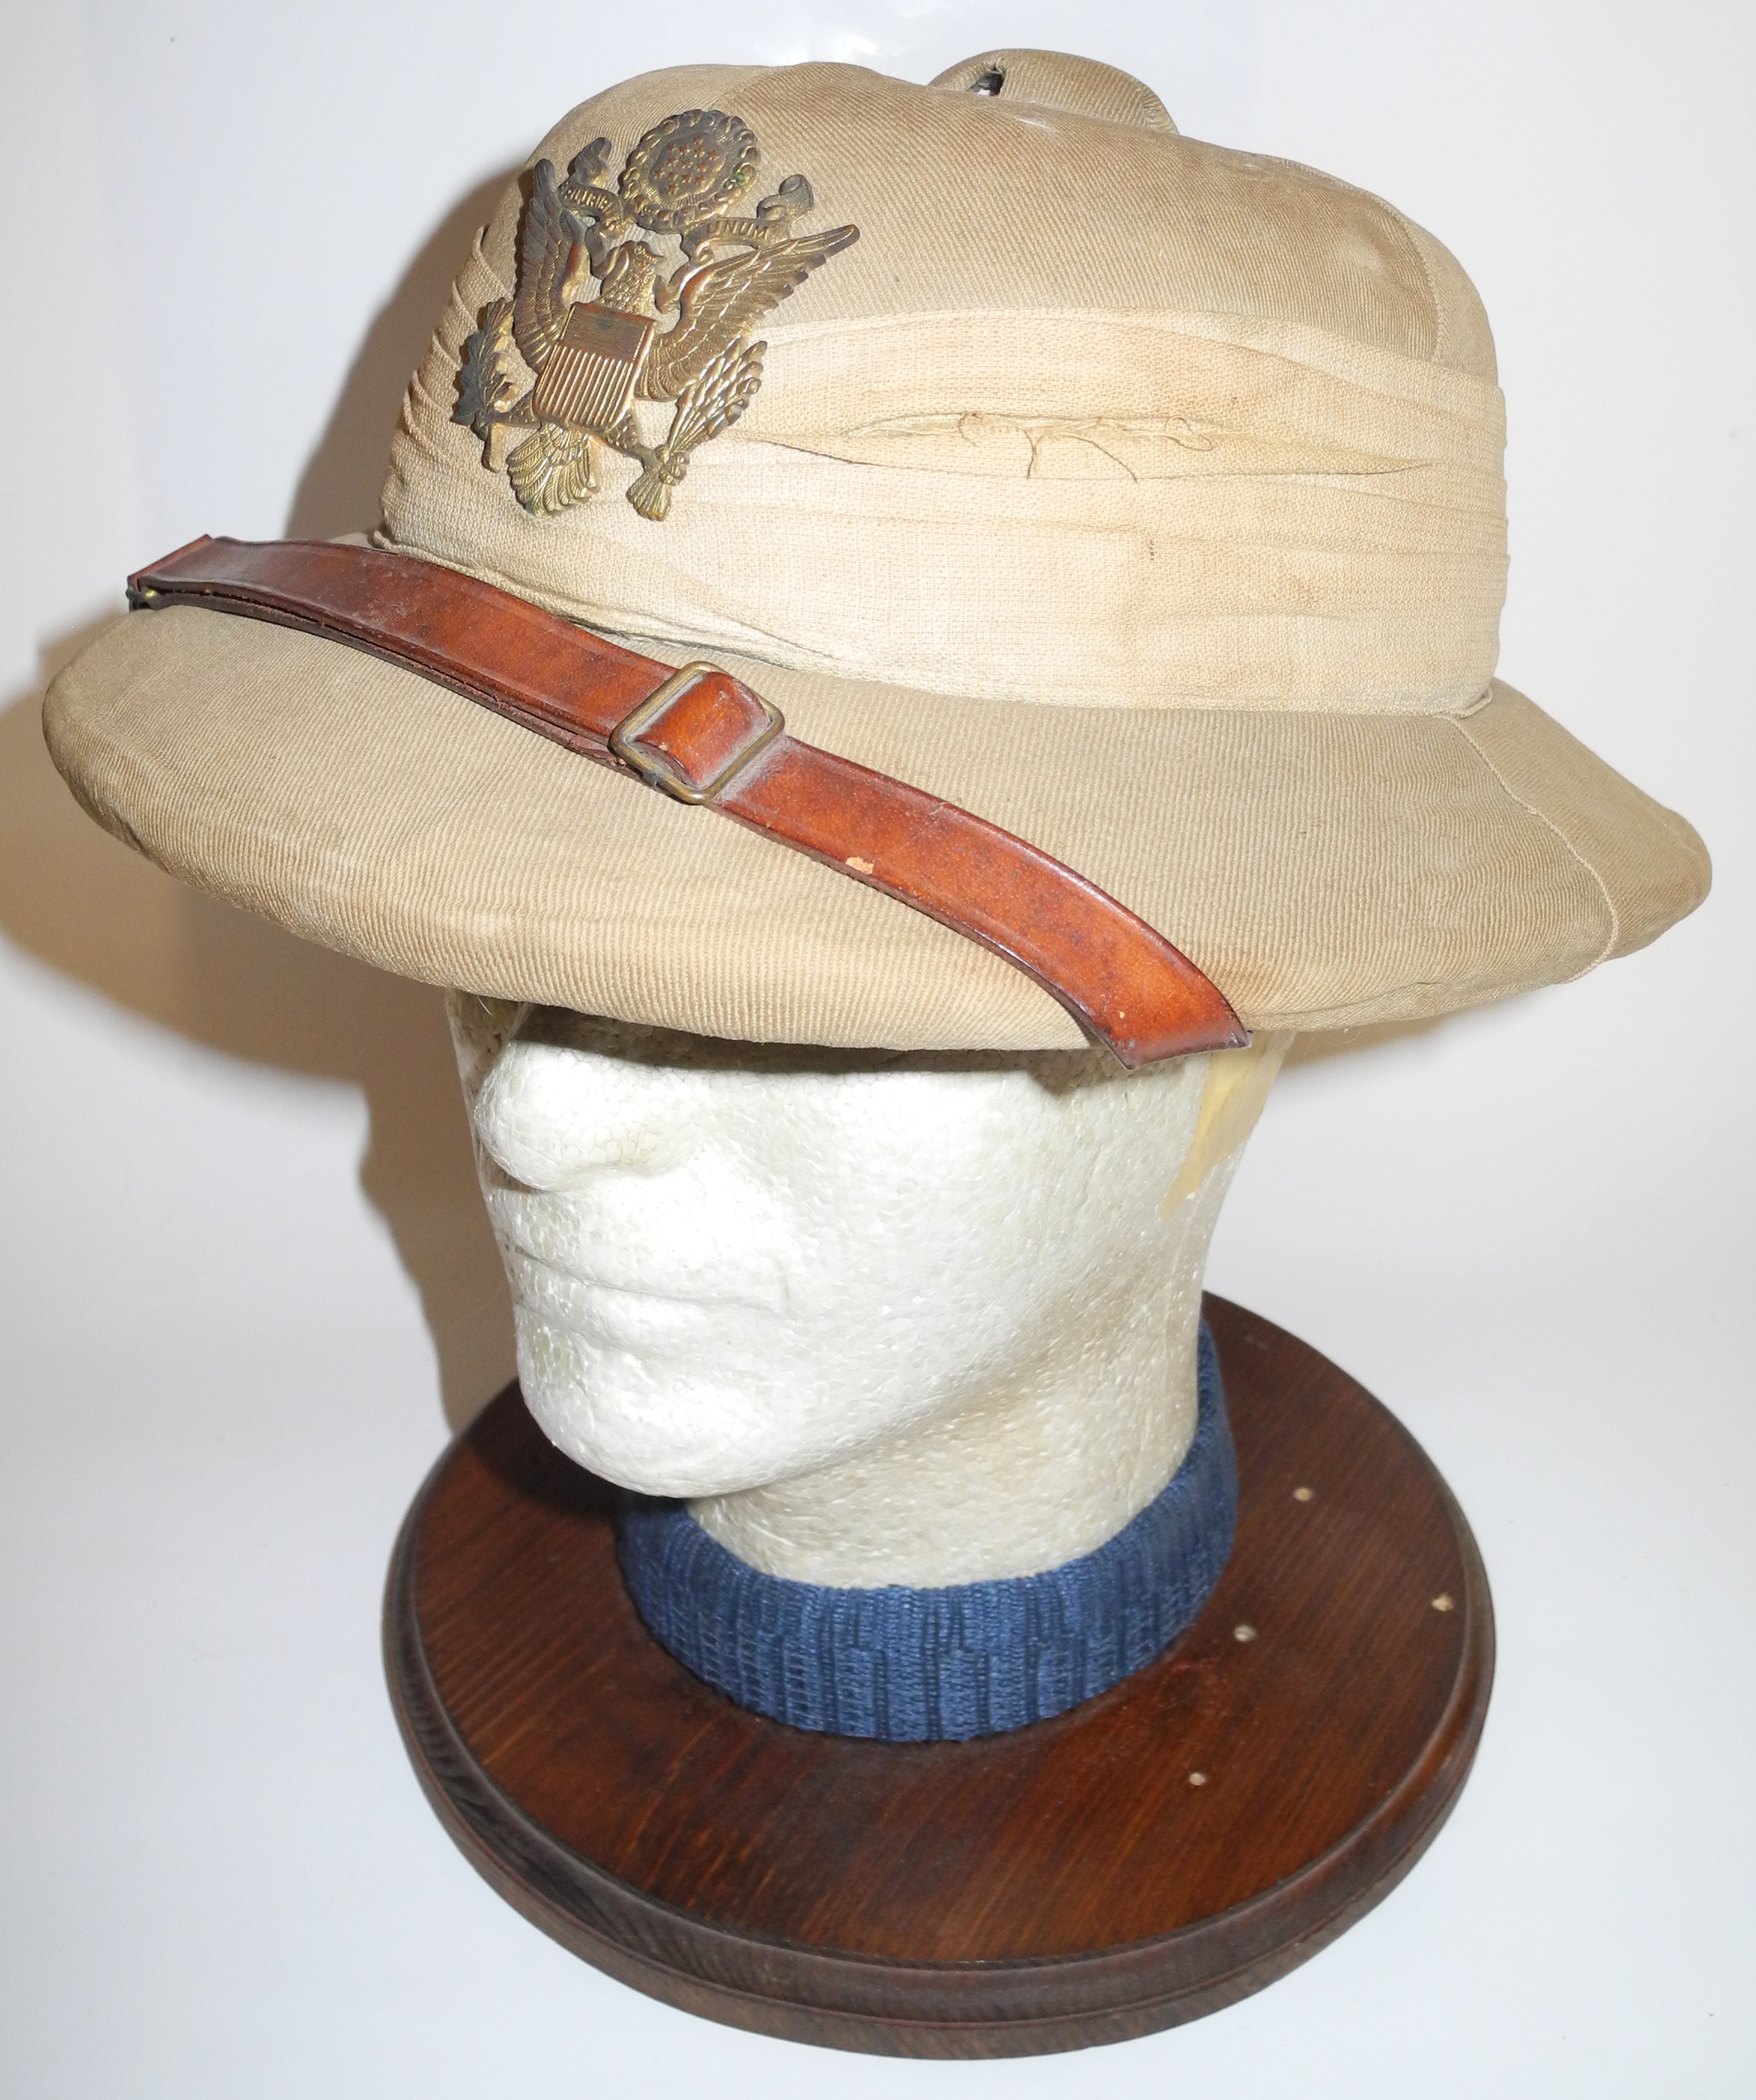 US Army officer's Indian made pith helmet